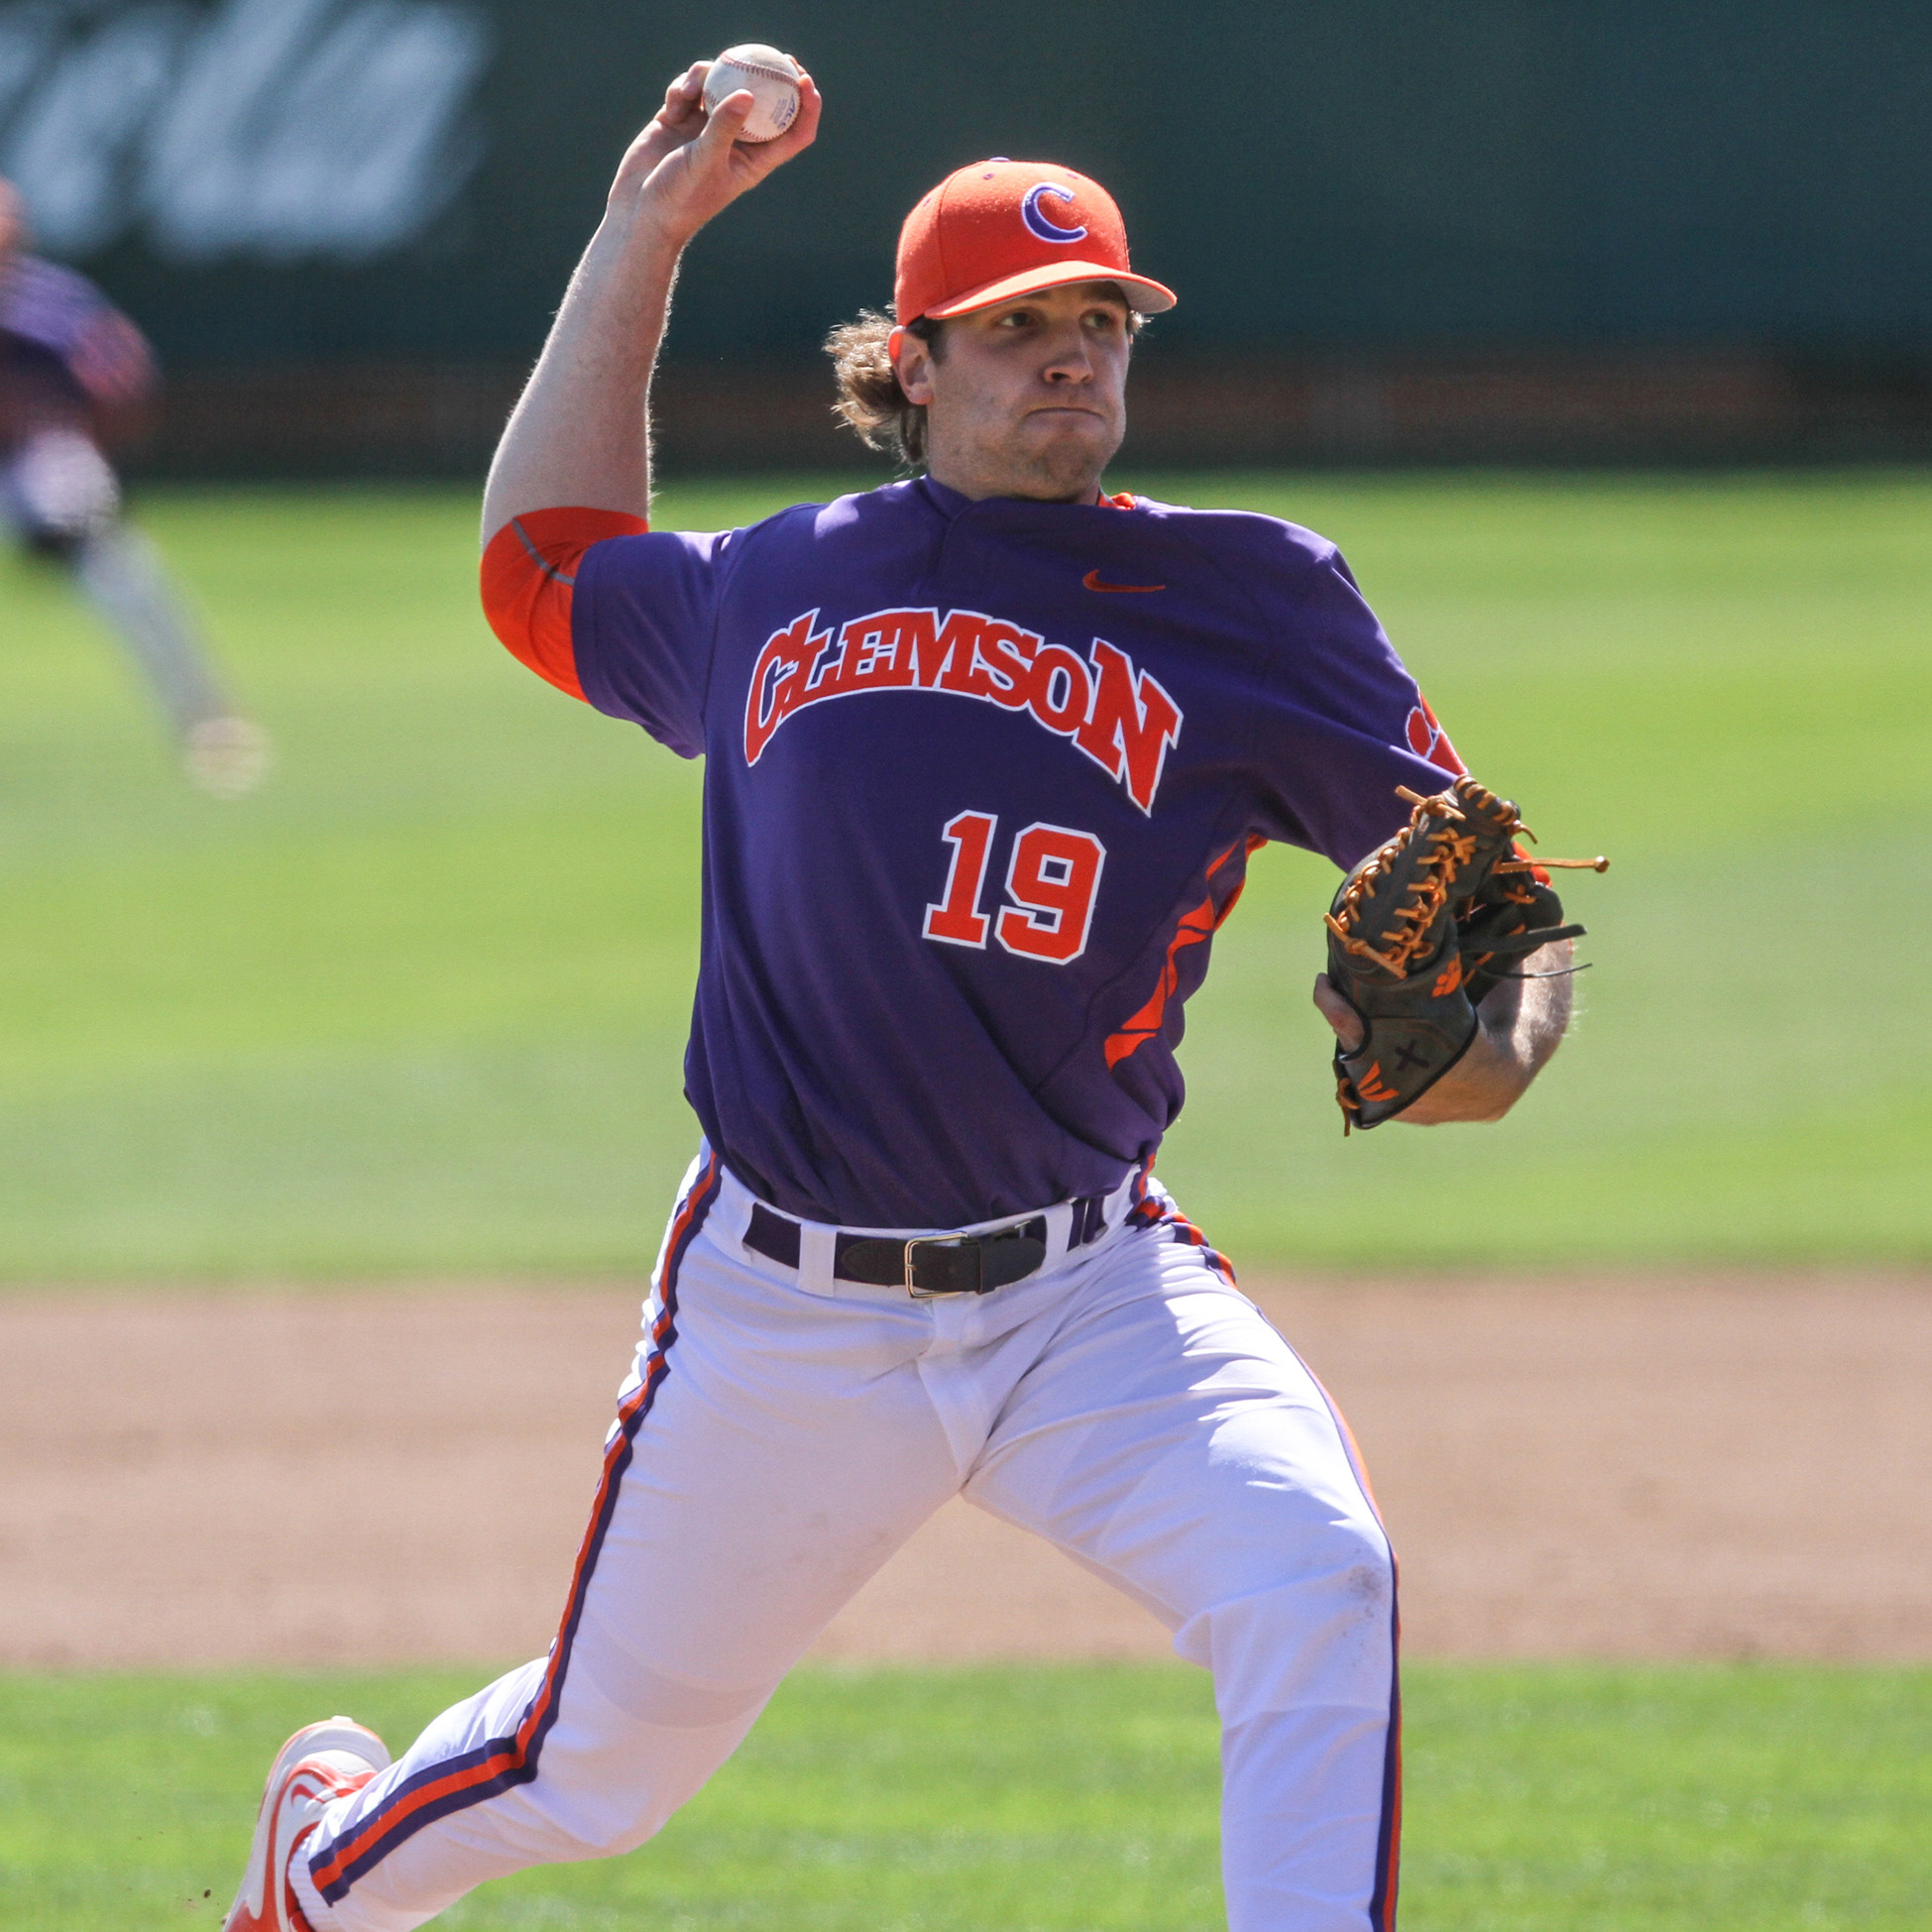 Clemson Hosts Duke at DKS